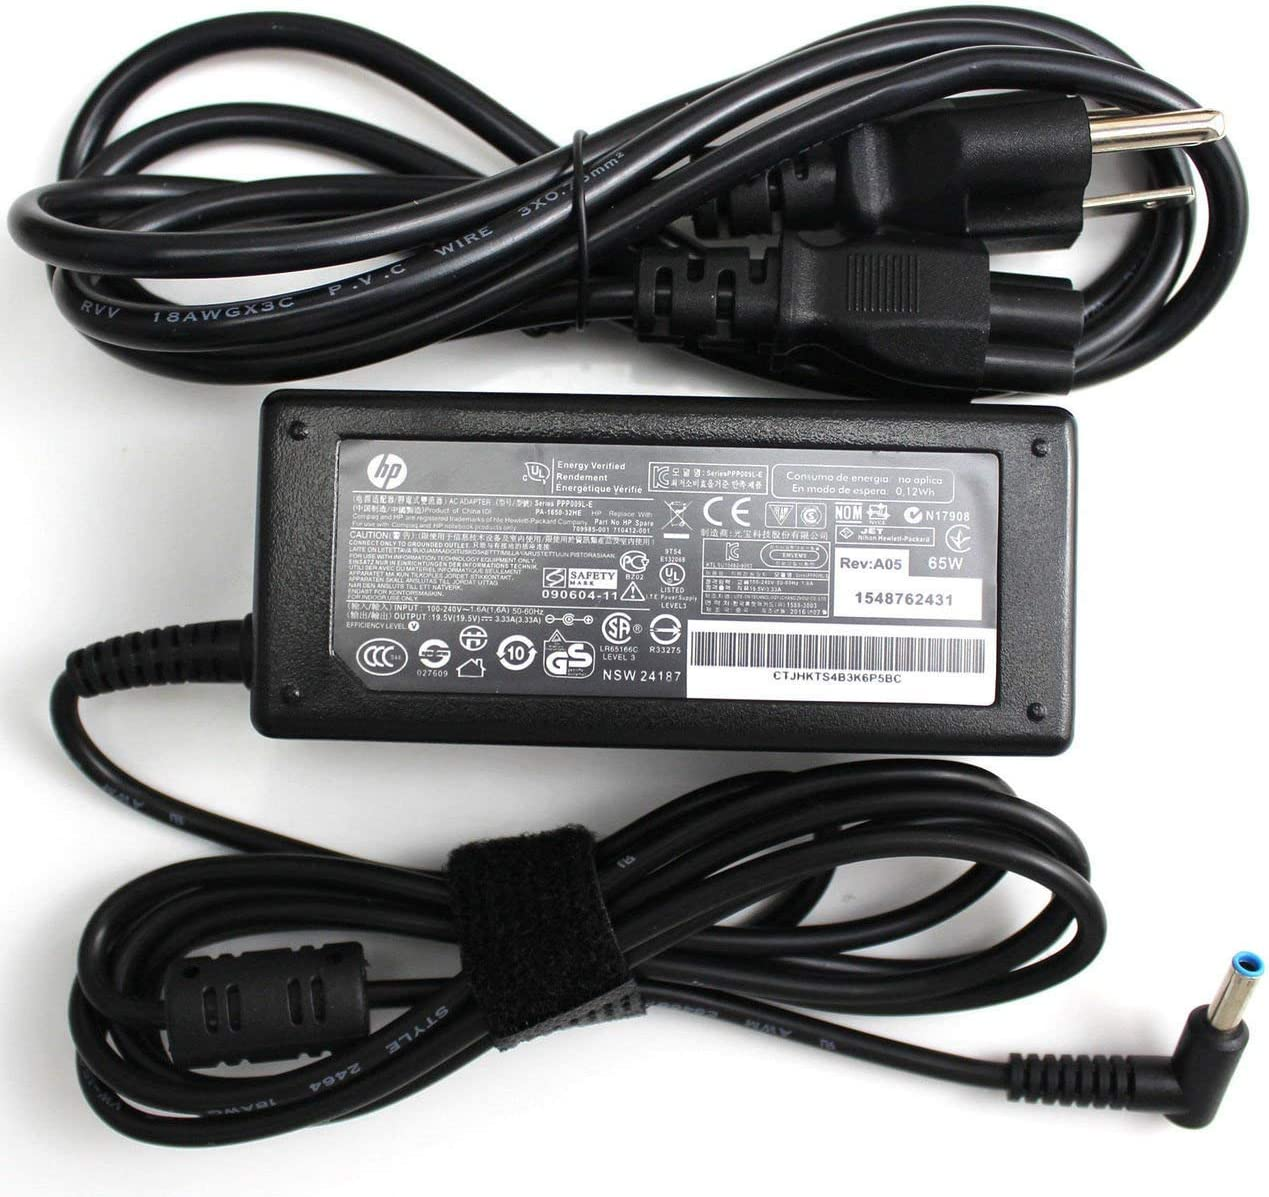 New Genuine HP ENVY TouchSmart Ultrabook 65W 19.5V 3.33A AC Adapter F7Z49AV 710412-001